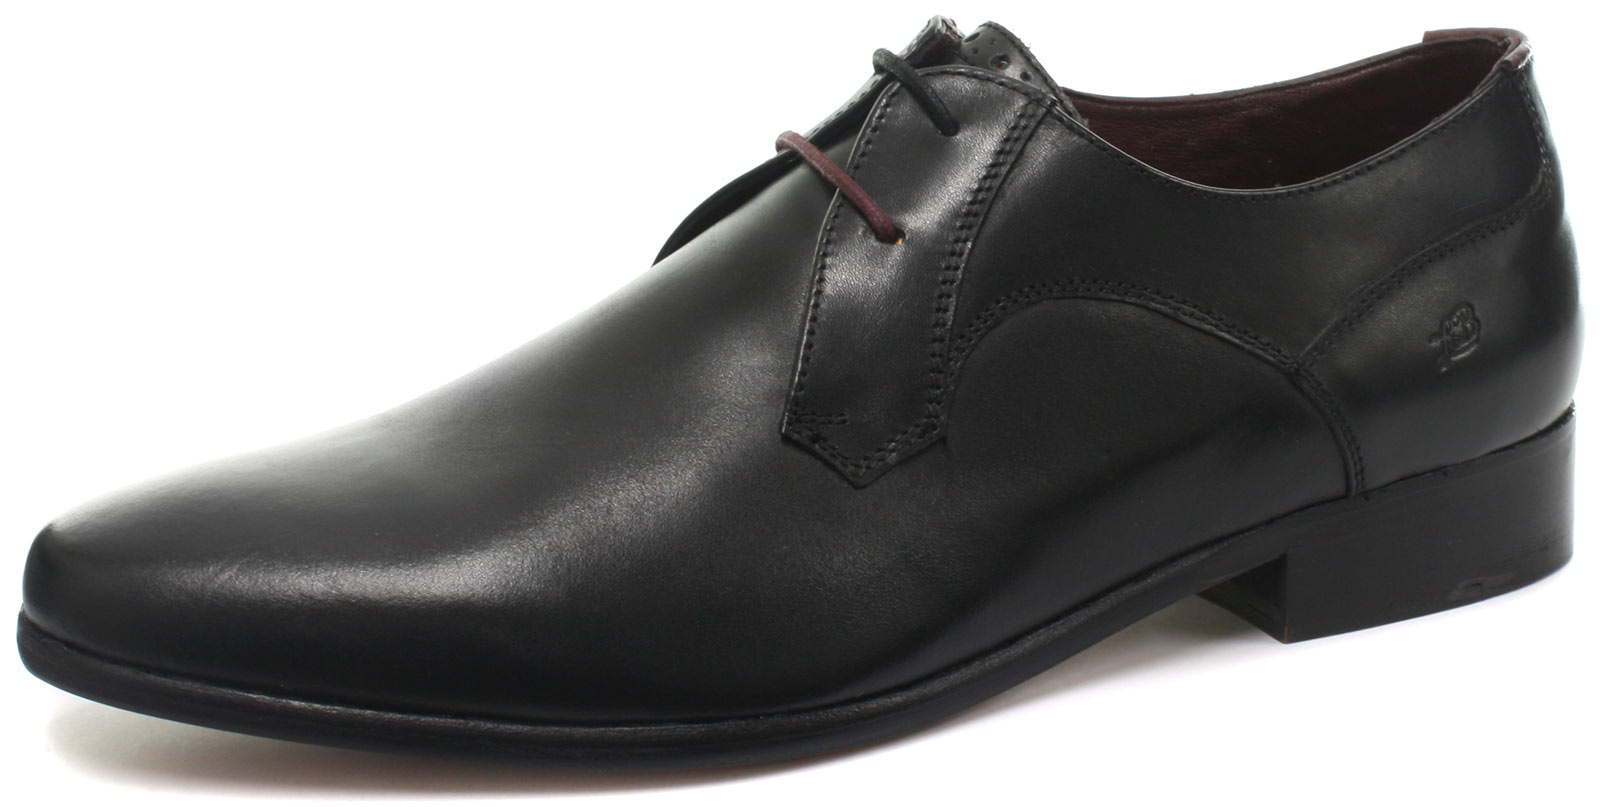 New London Brogues Axton Derby Black Mens Lace Up Shoes ALL SIZES